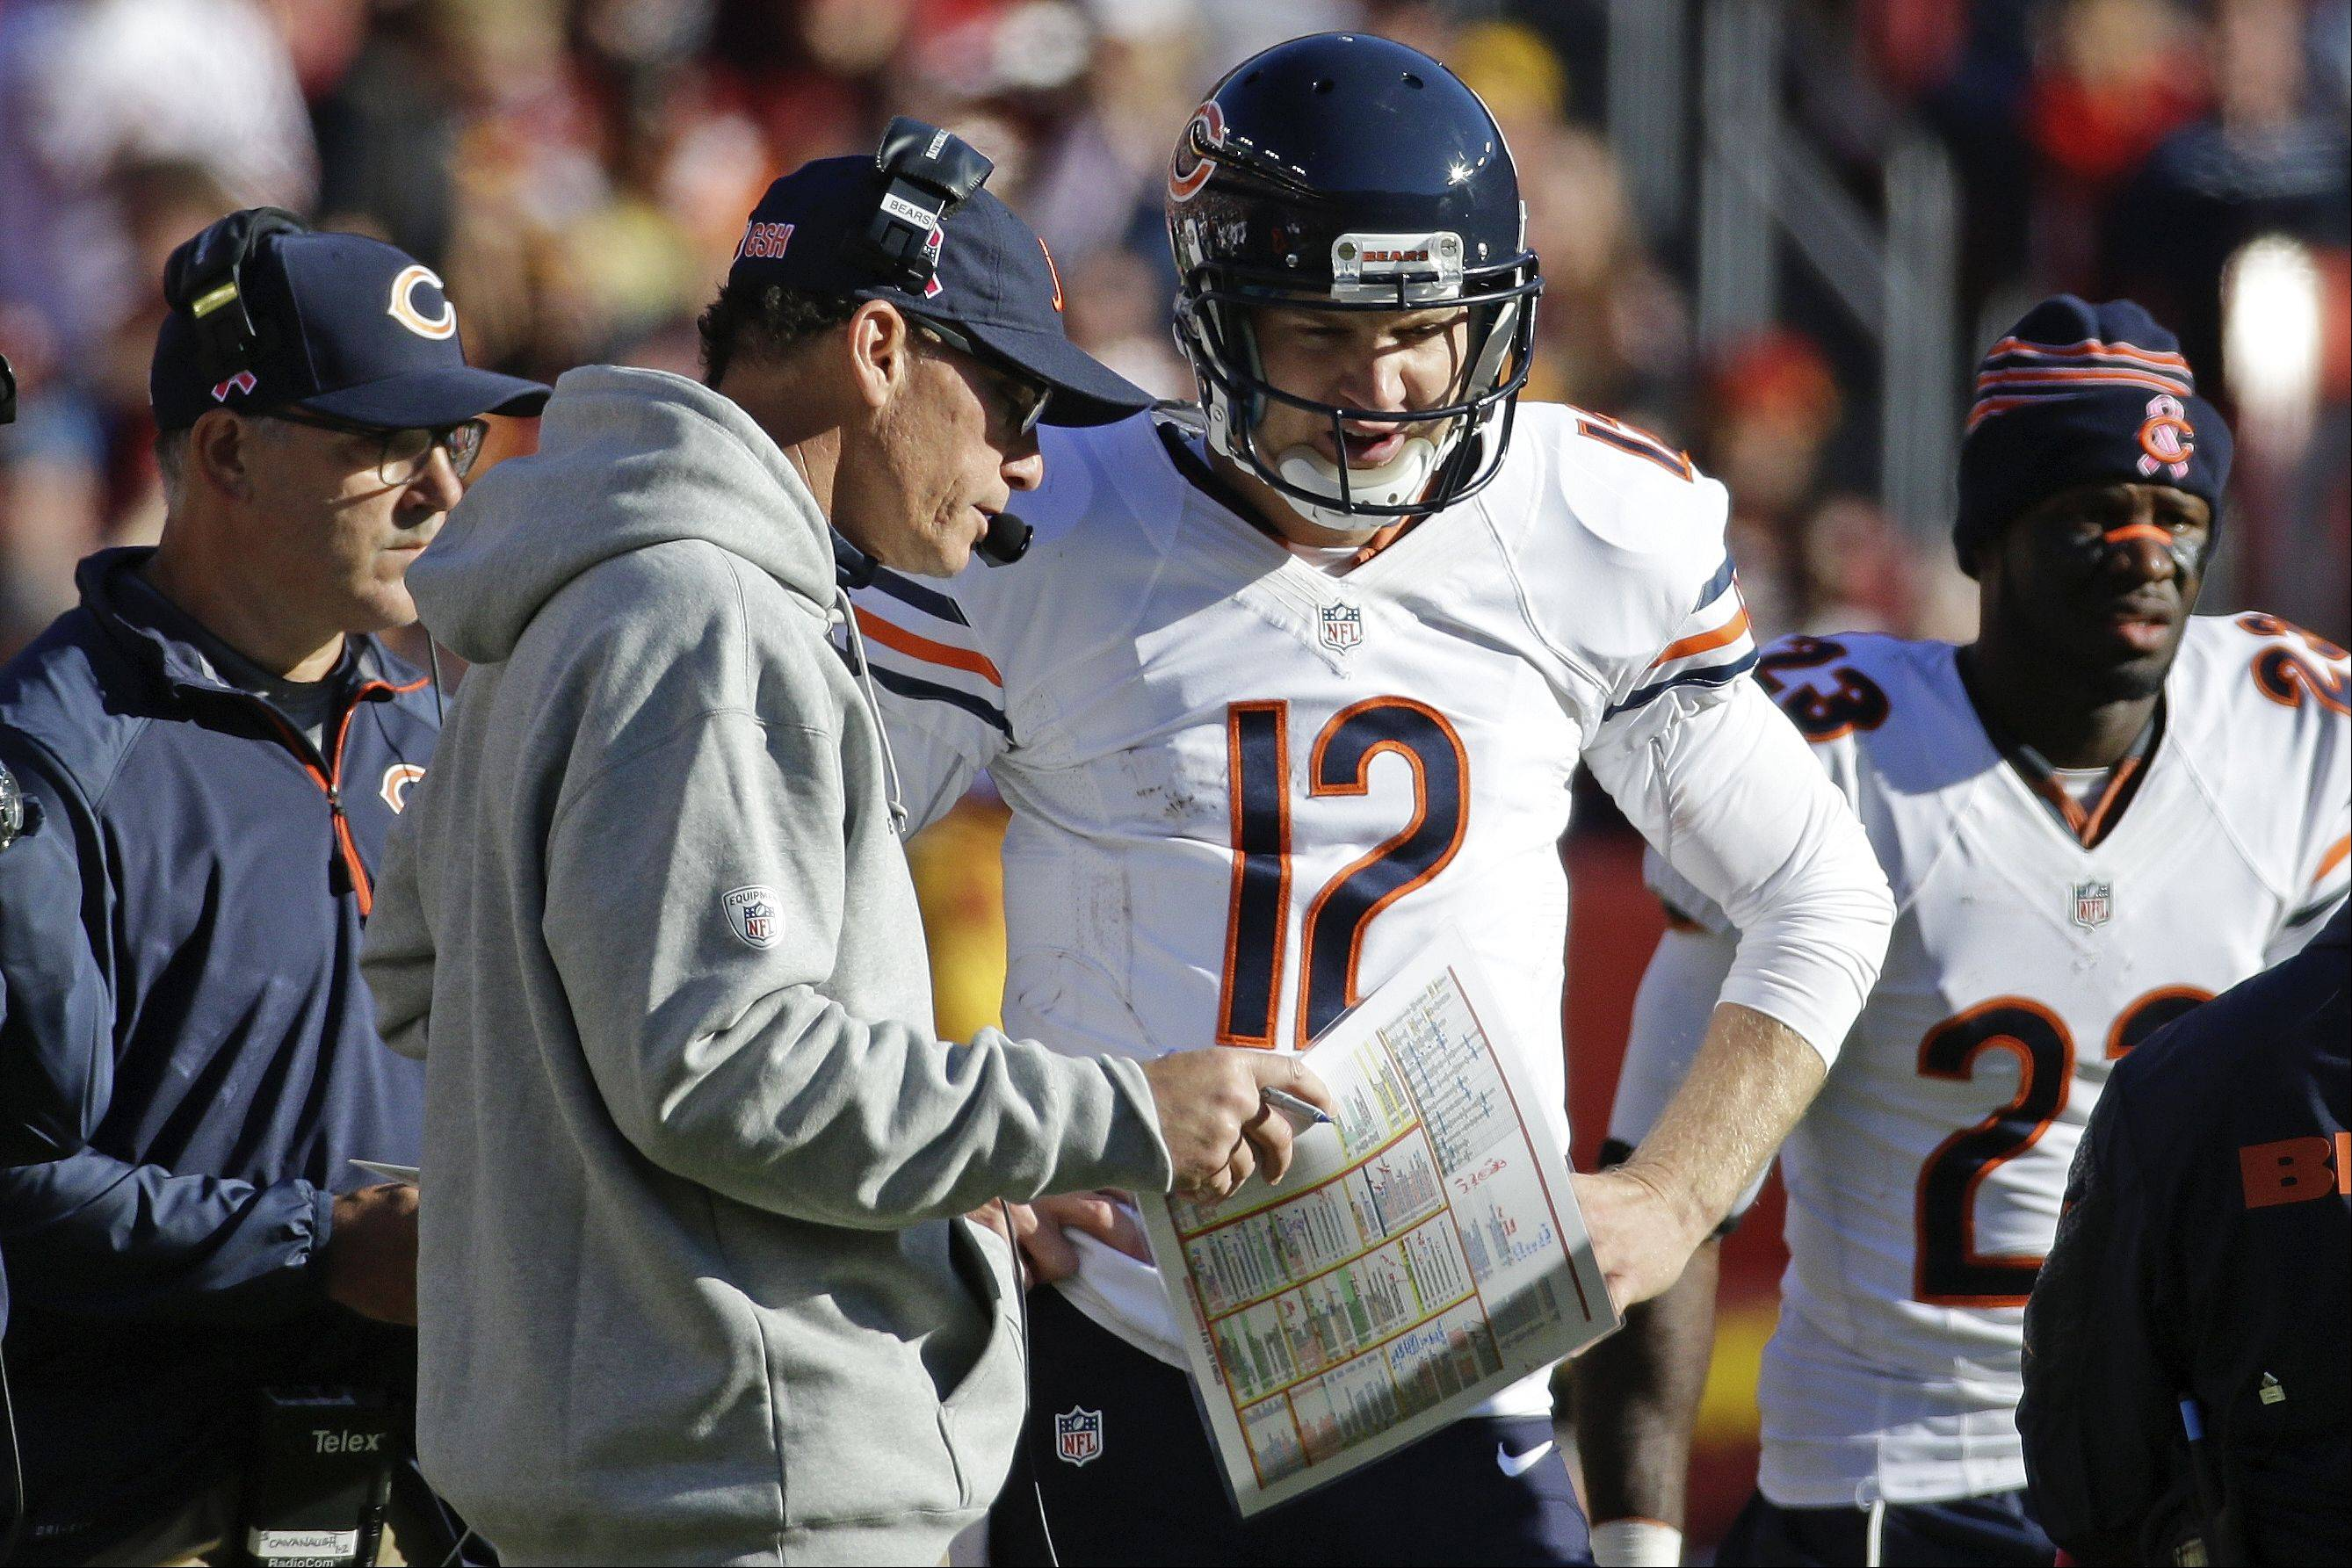 Coach Marc Trestman grew up five minutes from Mall of America Field at the Hubert H. Humphrey Metrodome, where the Bears meet the Vikings on Sunday. But he said he is �locked in to your day-to-day preparations,� not memories.